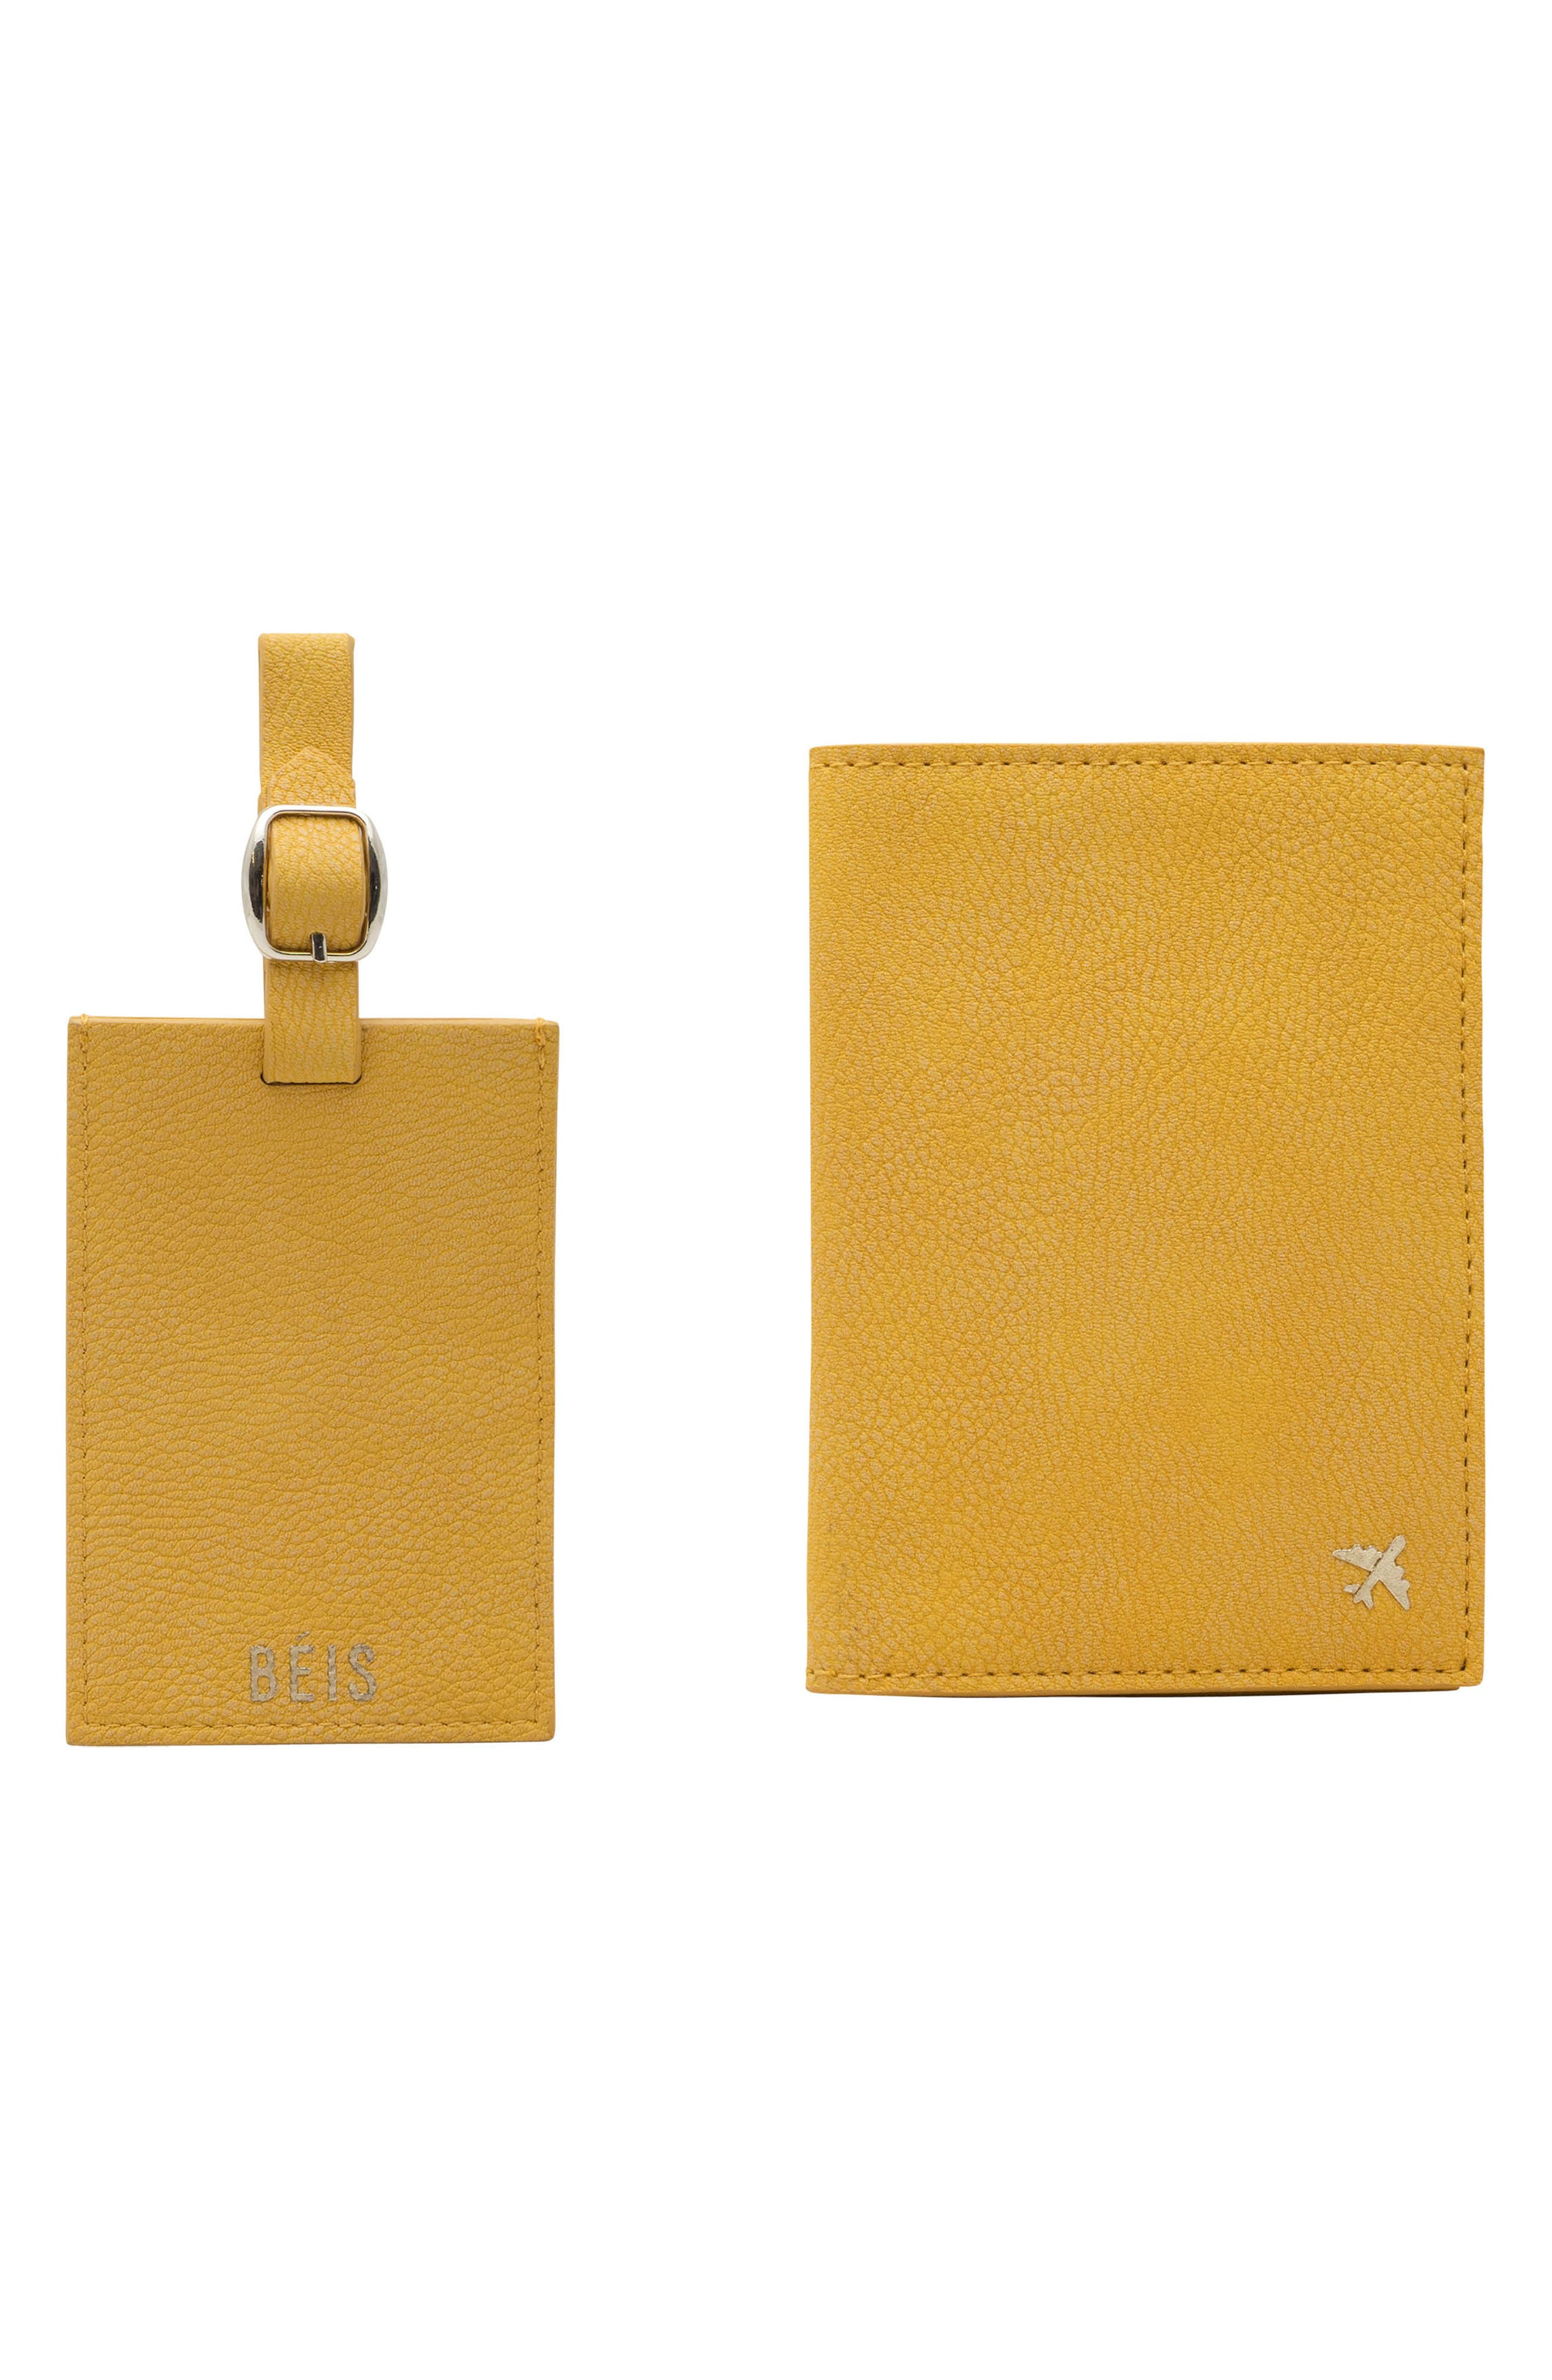 Travel Luggage Tag & Passport Holder Set,                             Main thumbnail 1, color,                             YELLOW